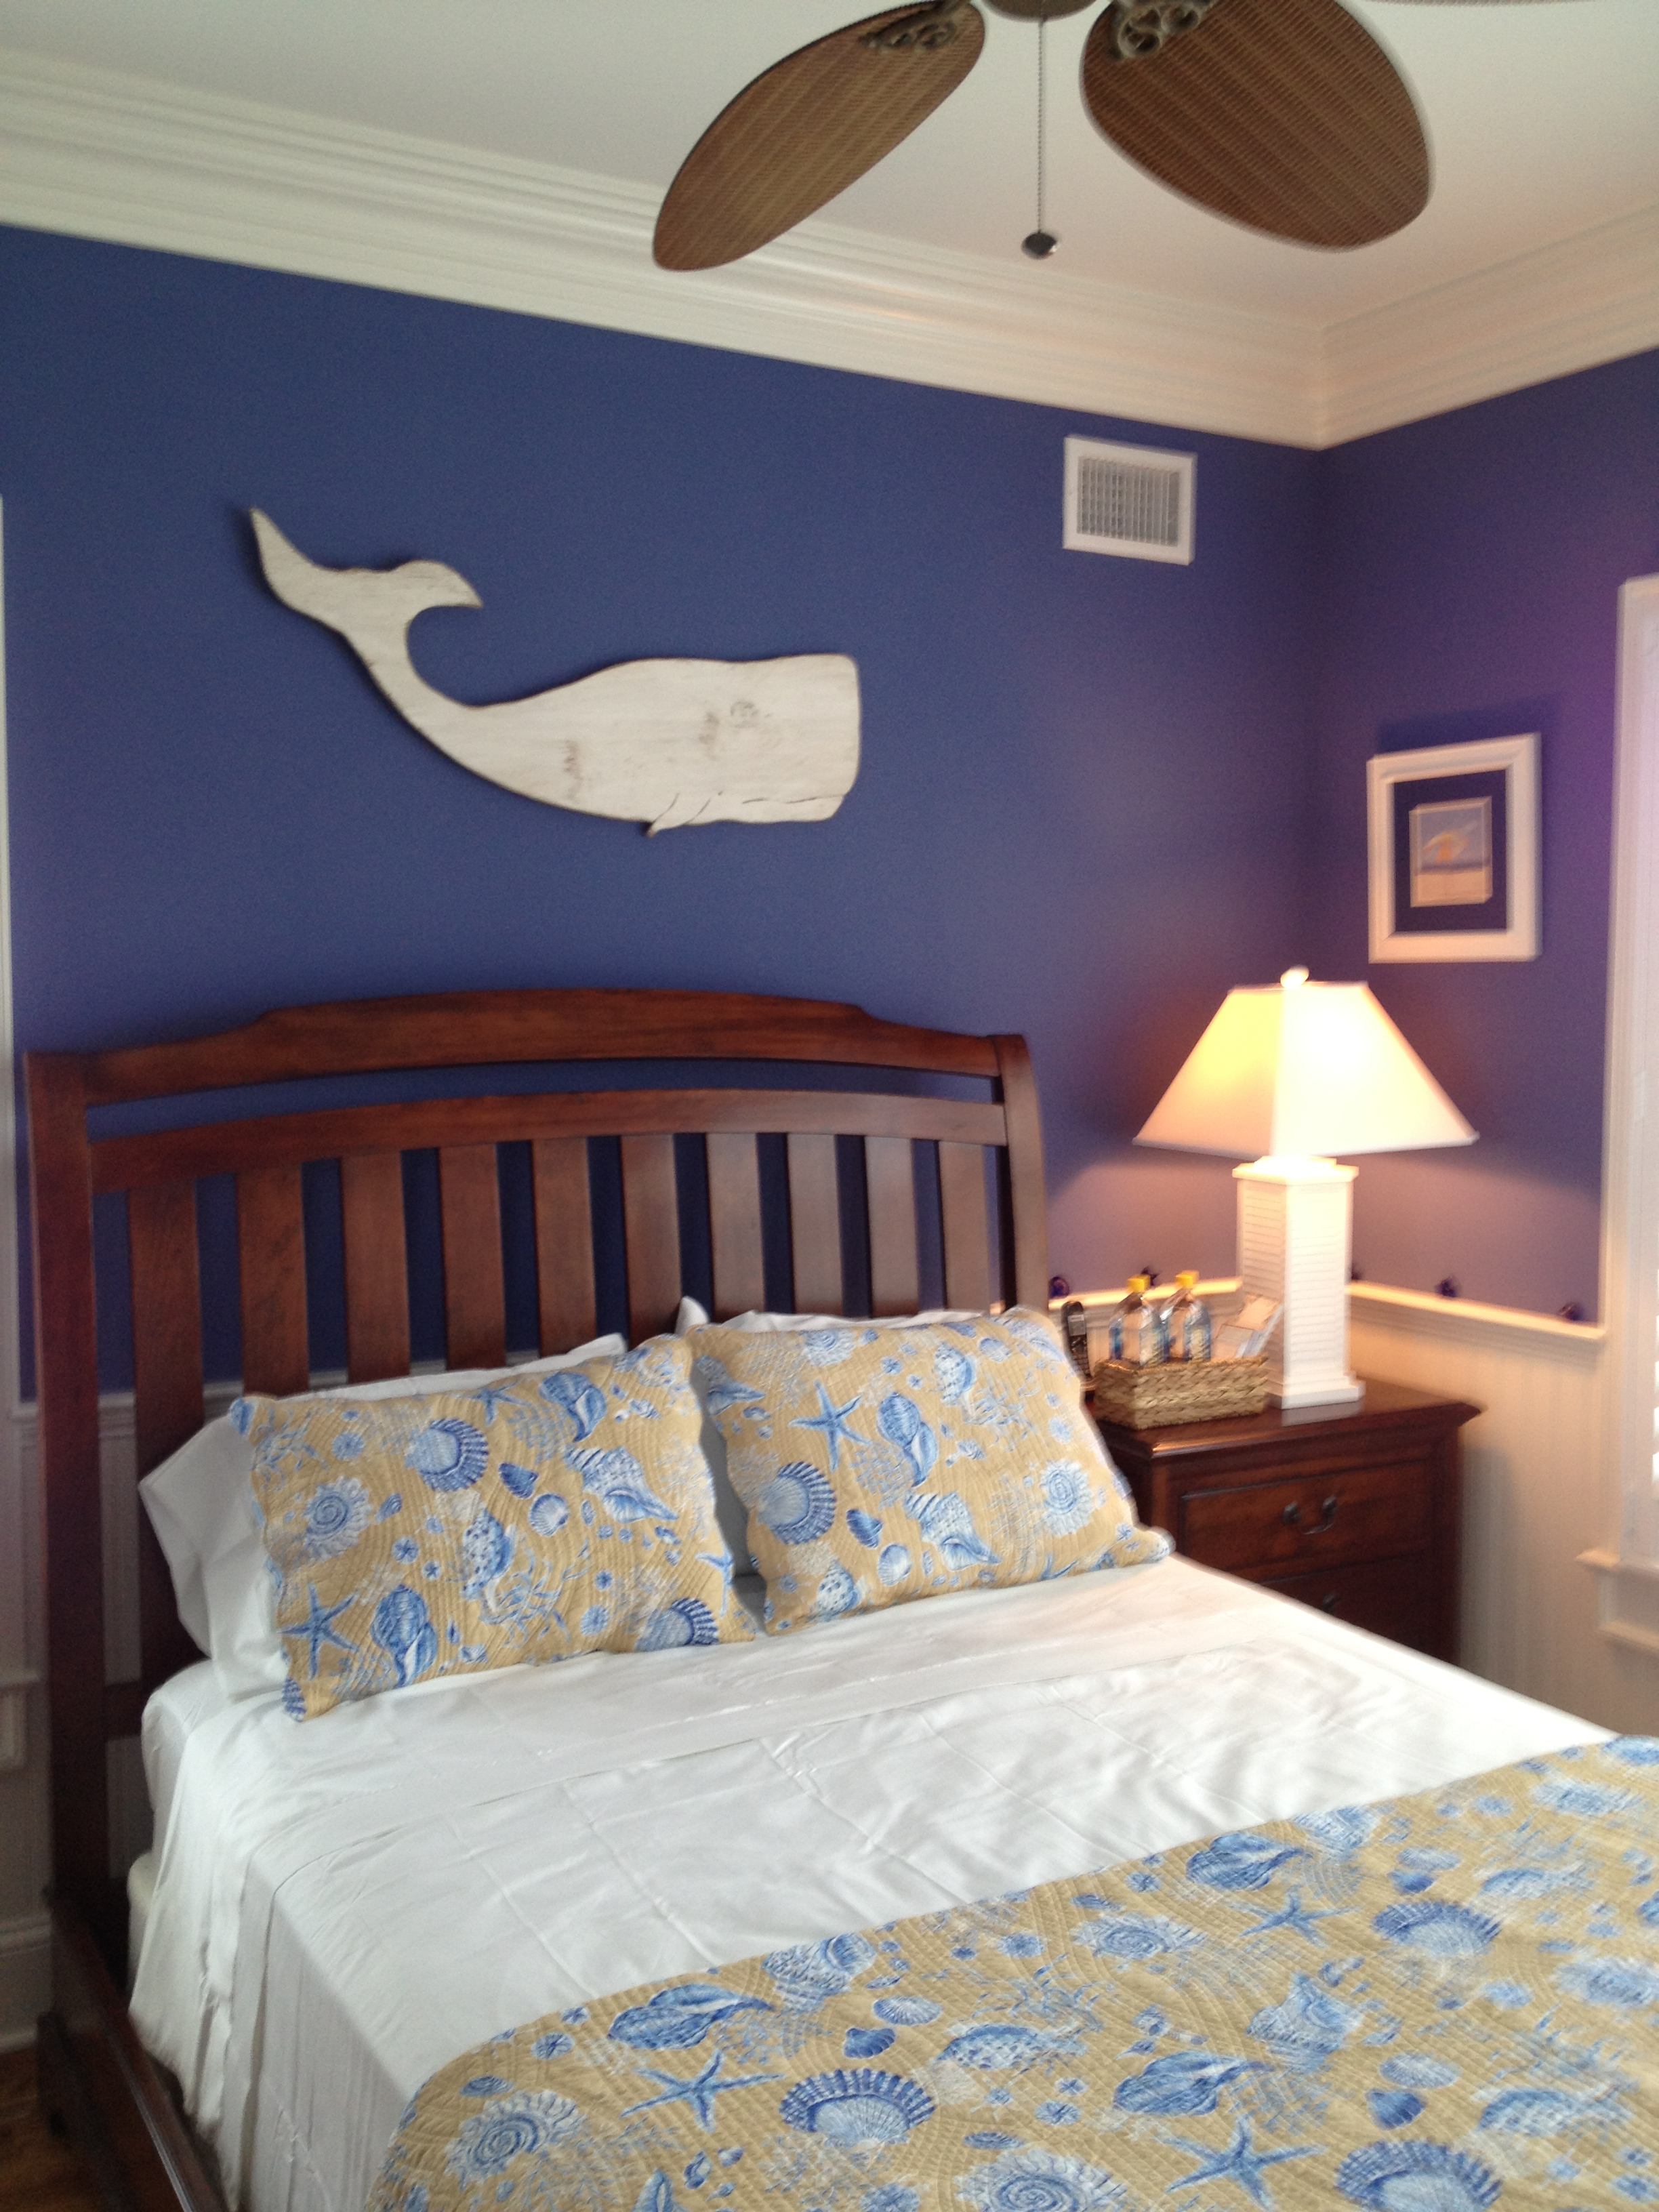 Guest Bedroom with whale decor